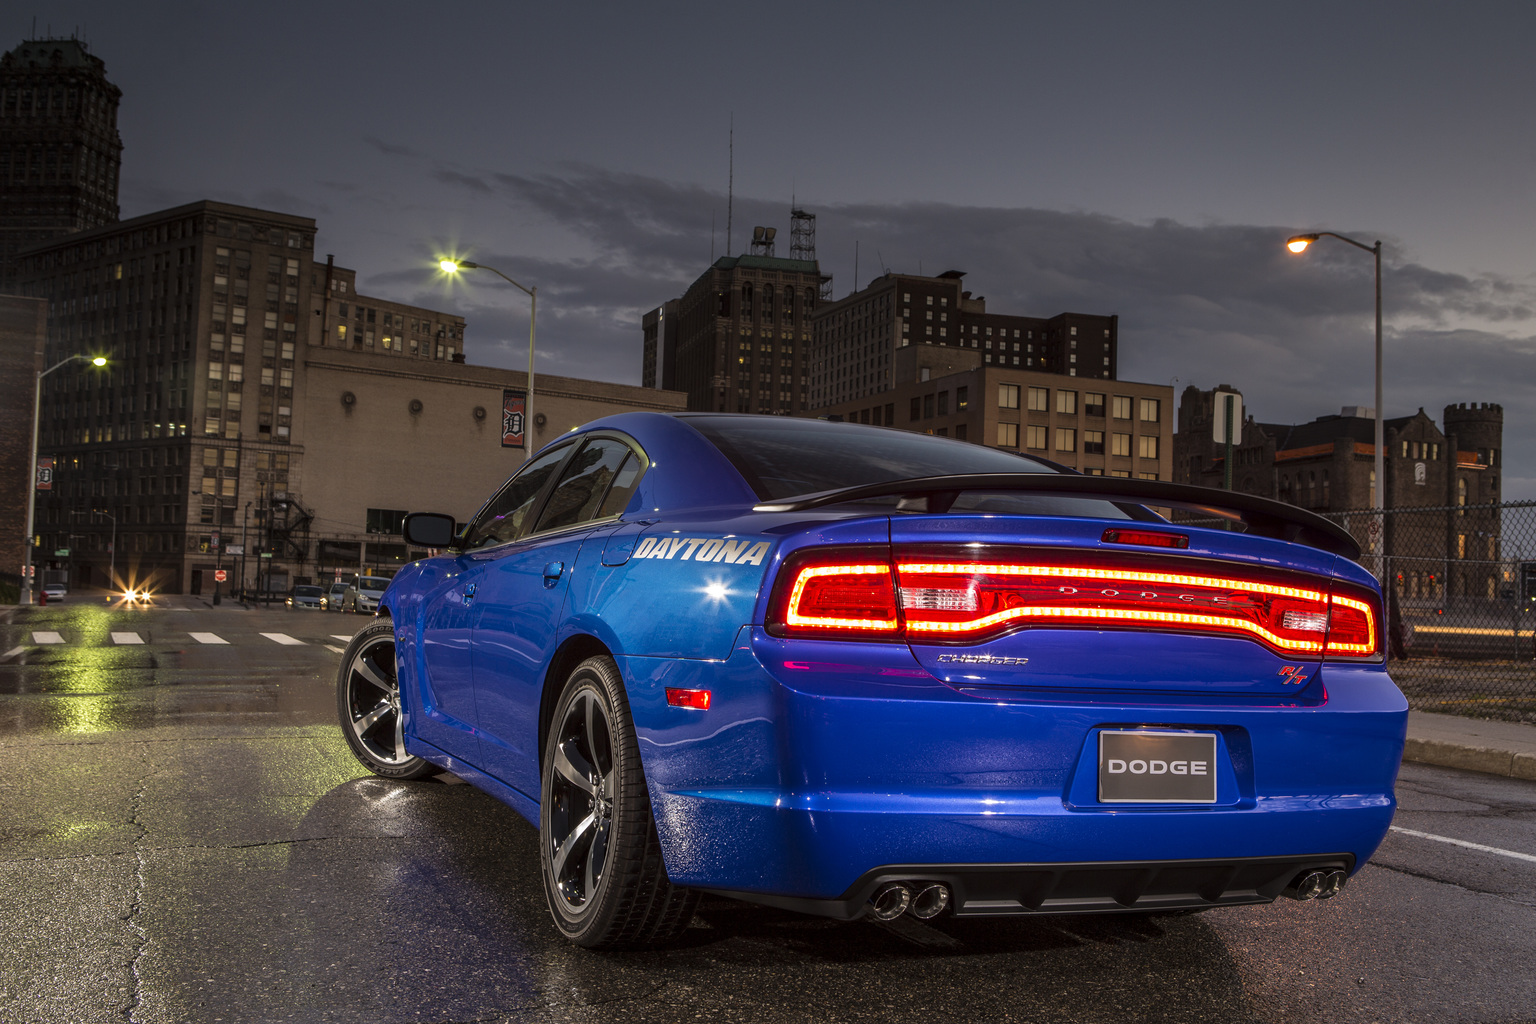 2013 Dodge Charger R/T Daytona